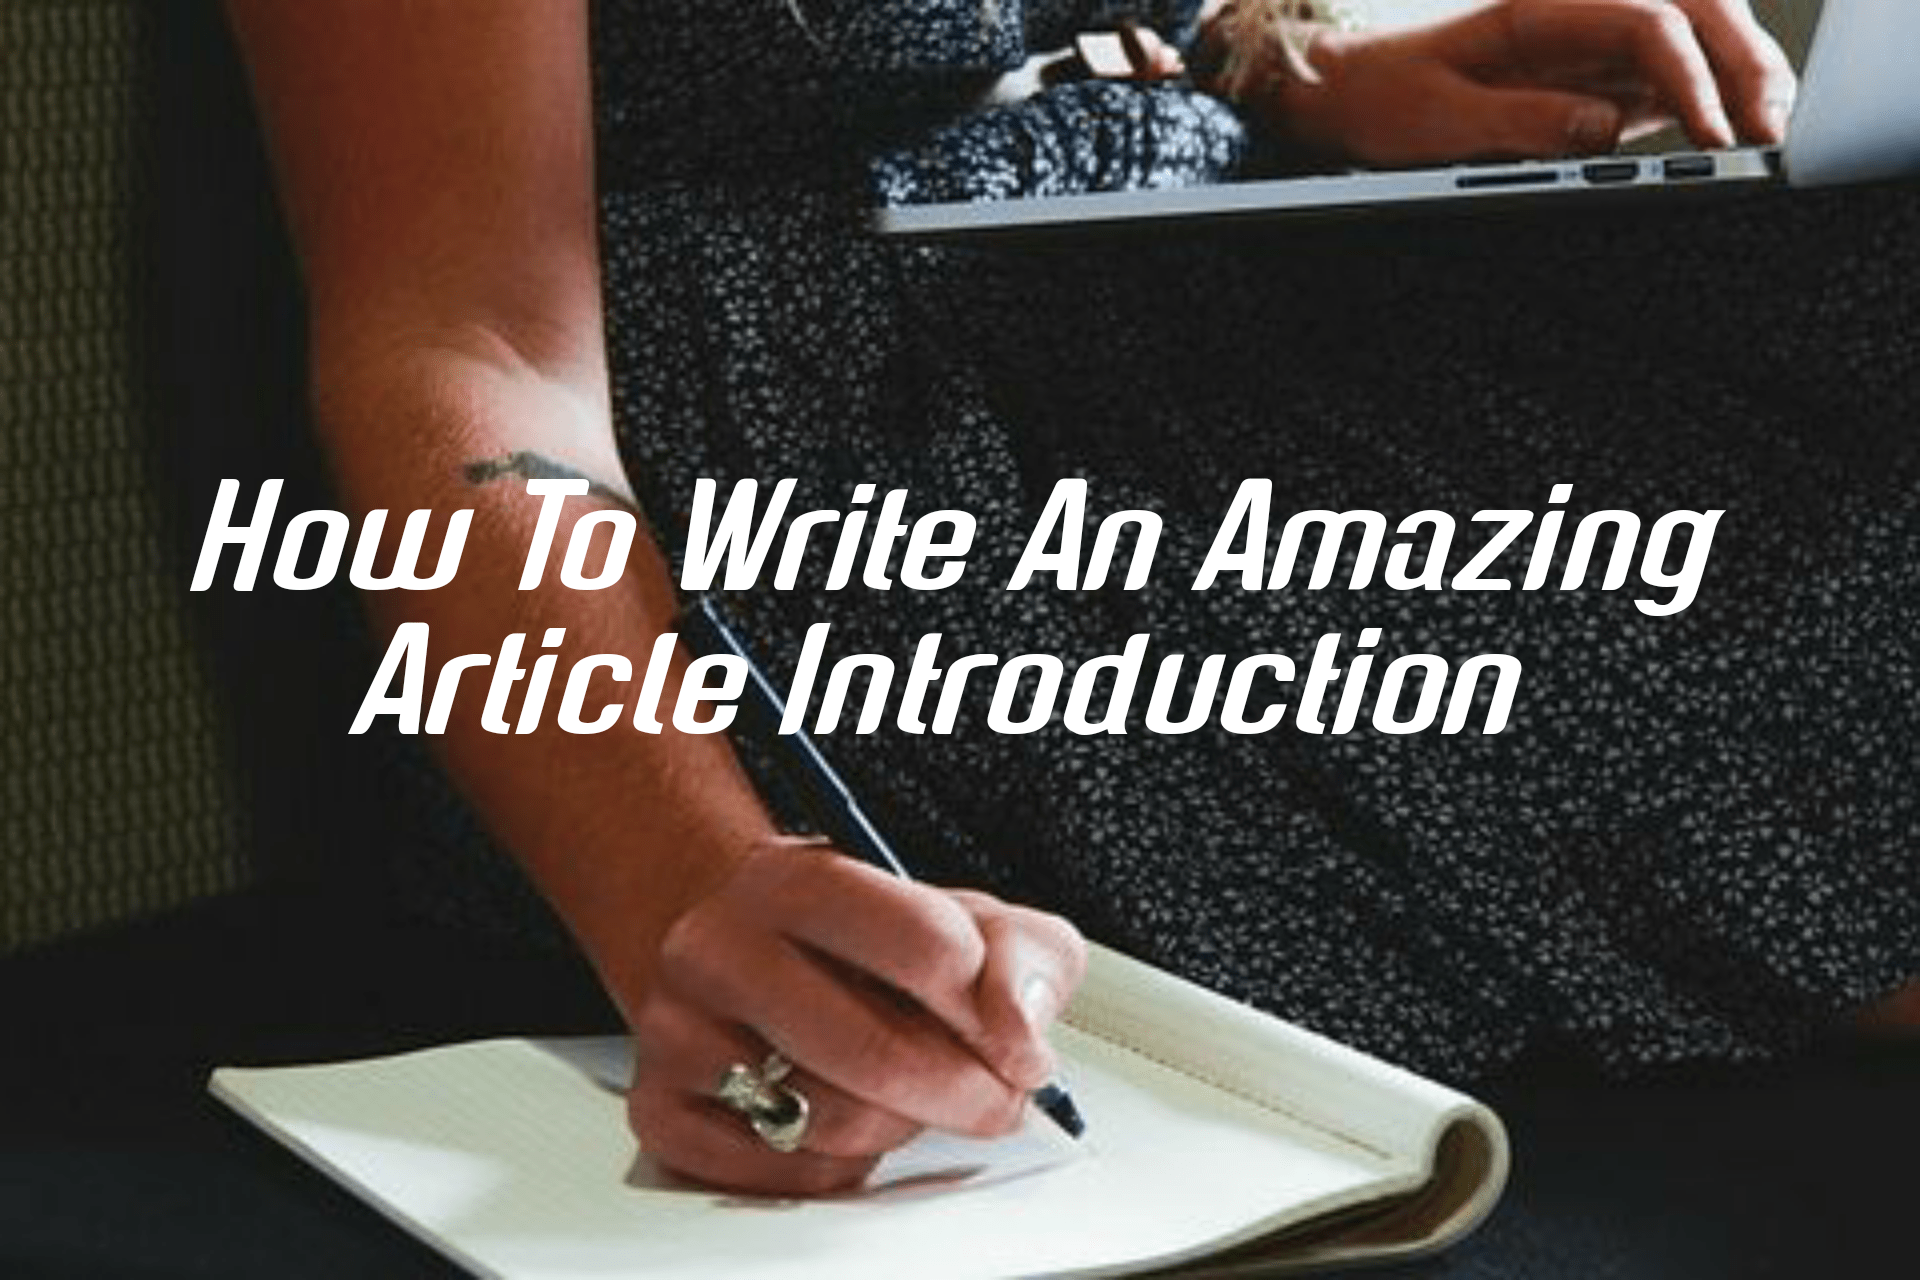 How to Write Attention-Grabbing Article Introductions